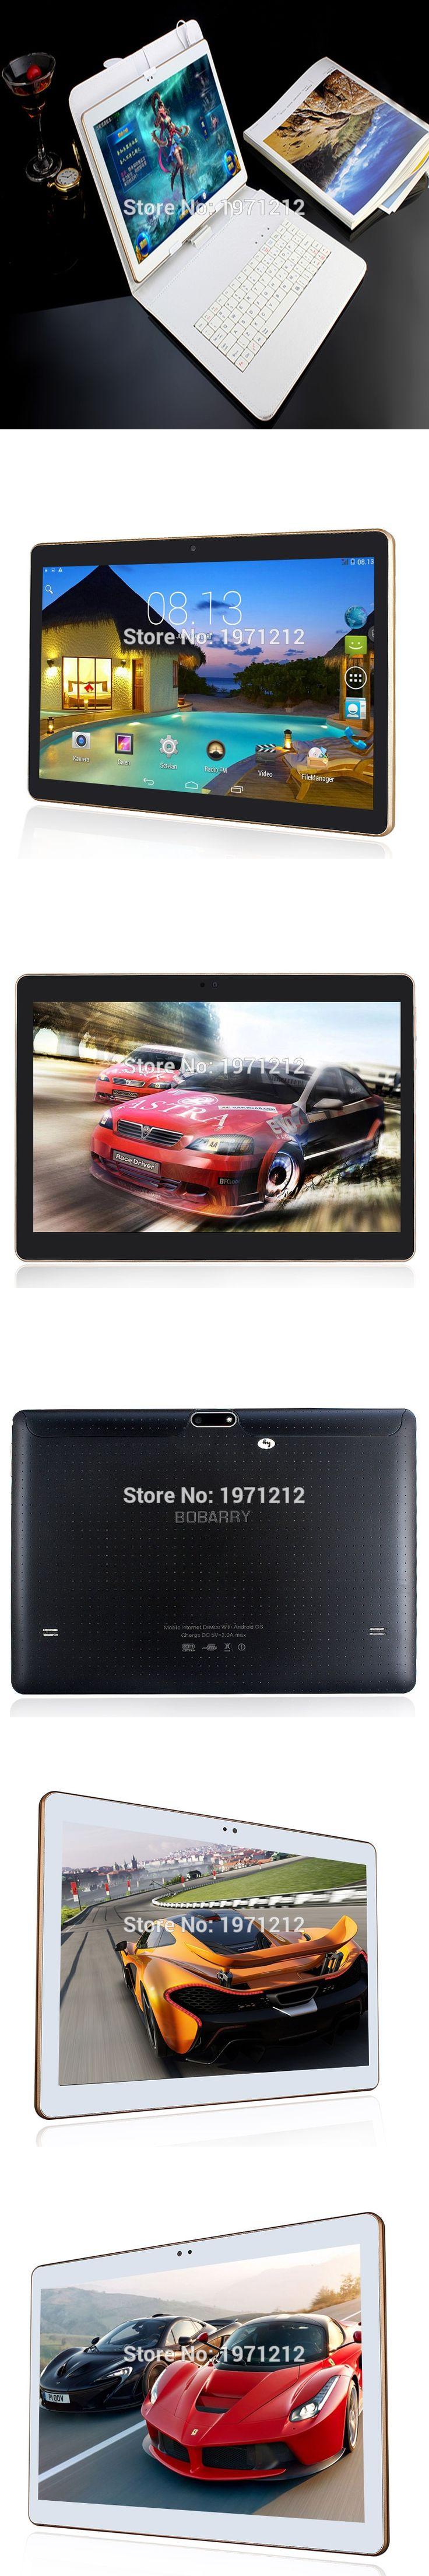 tablet10.1 inch 3G 4G tablet Octa Core 1280*800 IPS 5.0MP 4G RAM 32GB ROM Android 5.1 Bluetooth GPS 10.1 tablet pc